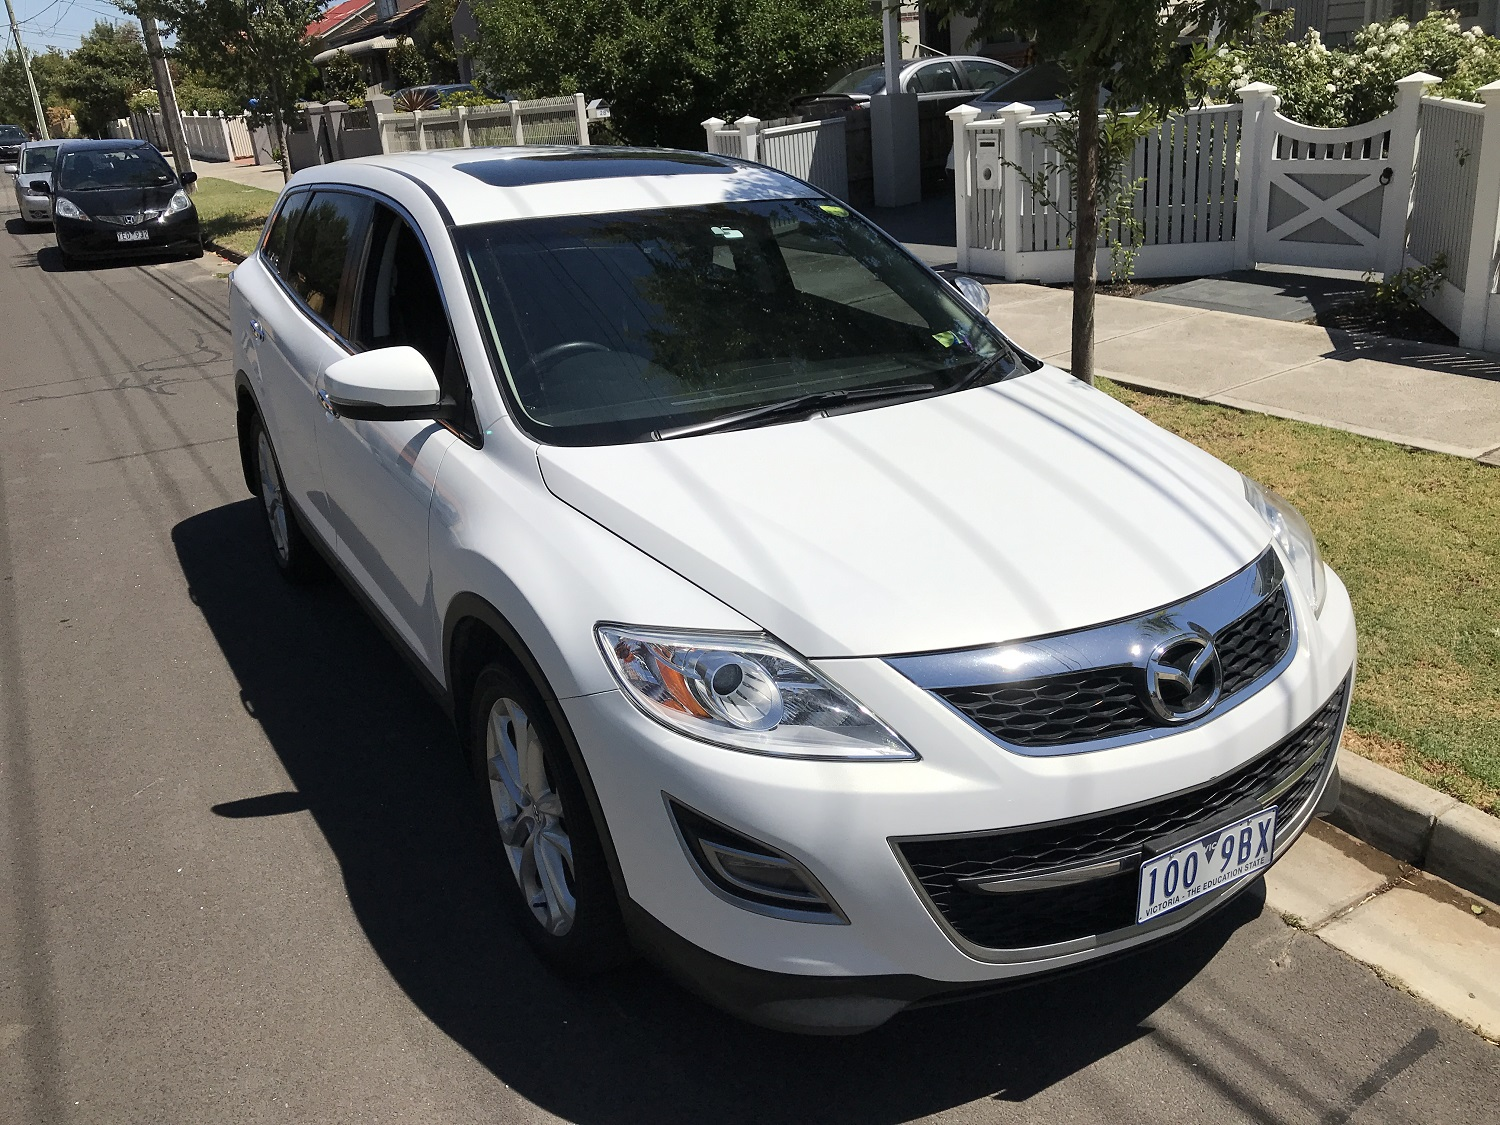 Picture of GEMMA's 2012 Mazda CX9